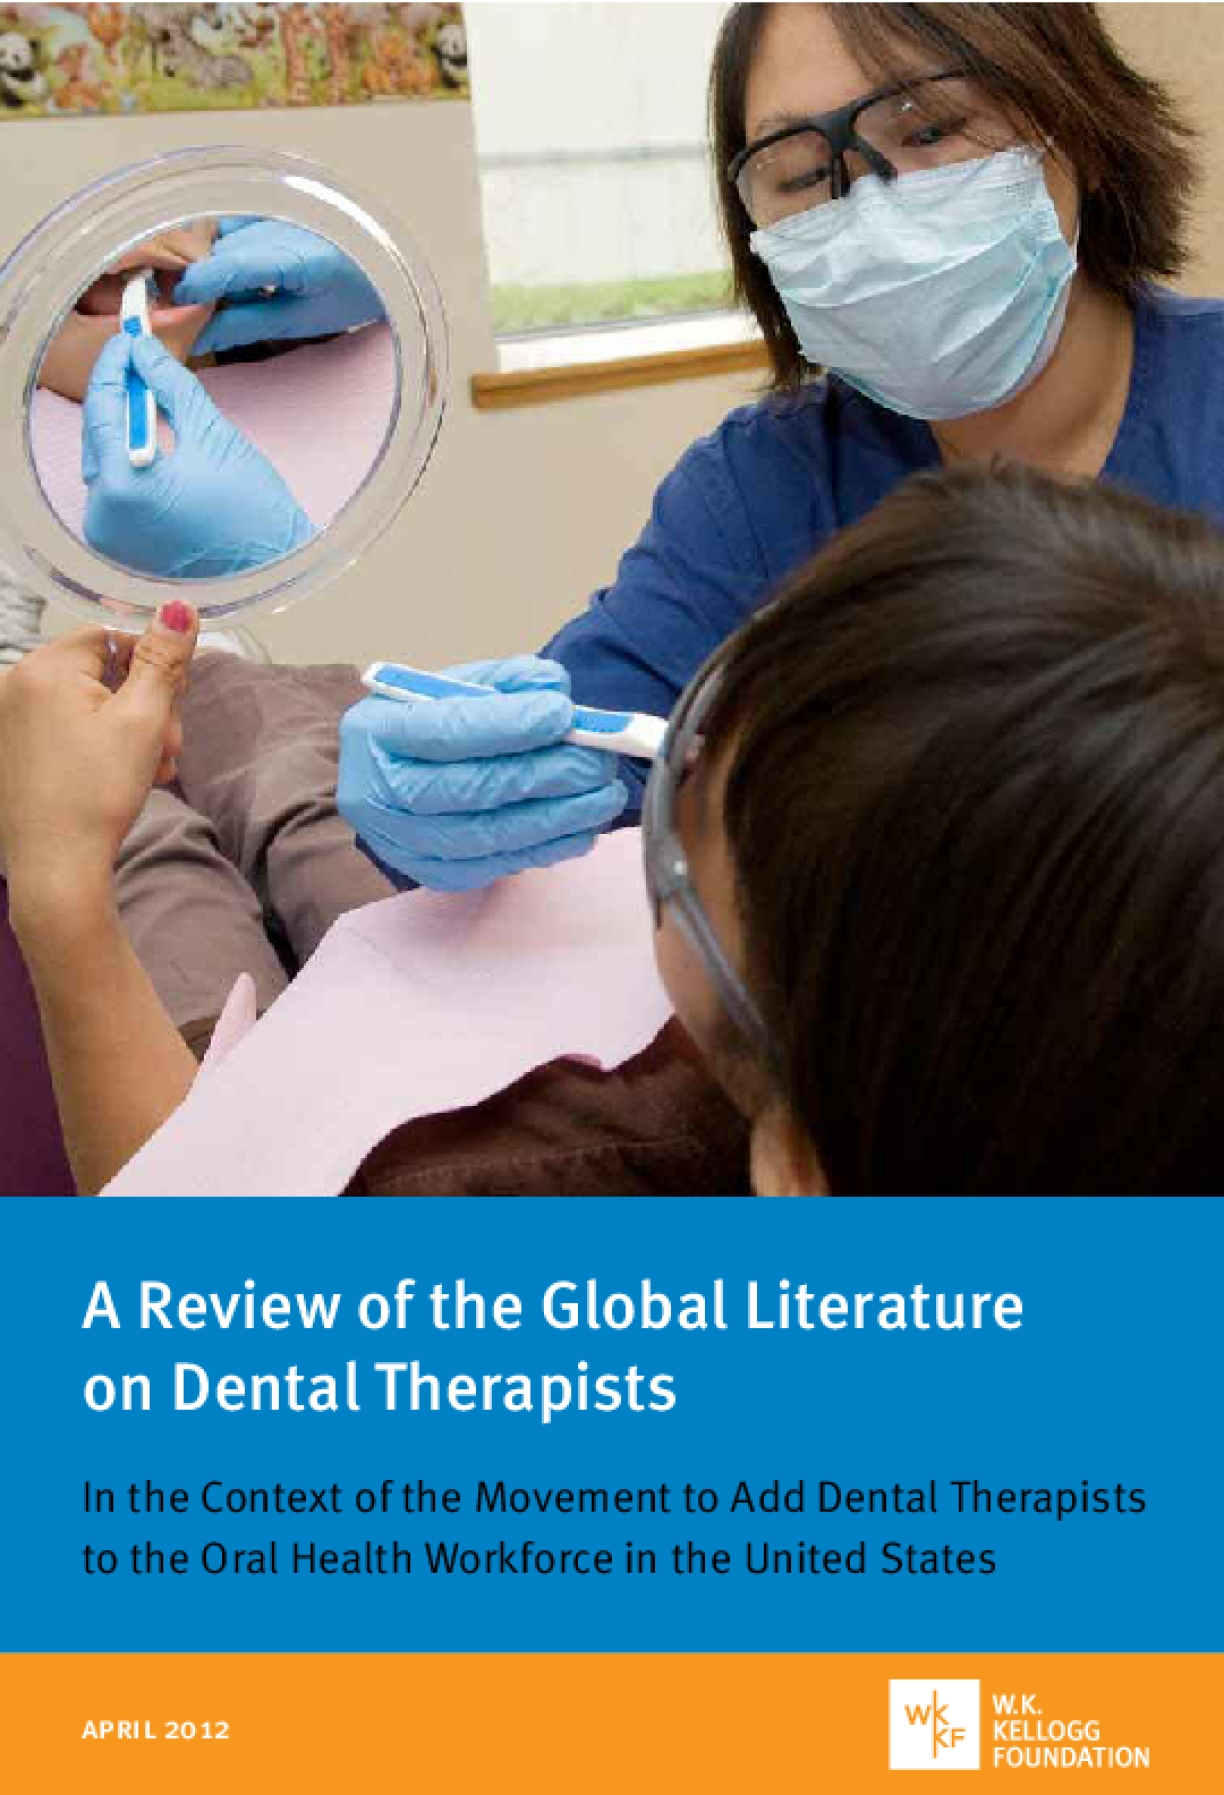 A Review of the Global Literature on Dental Therapists: In the Context of the Movement to Add Dental Therapists to the Oral Health Workforce in the United States